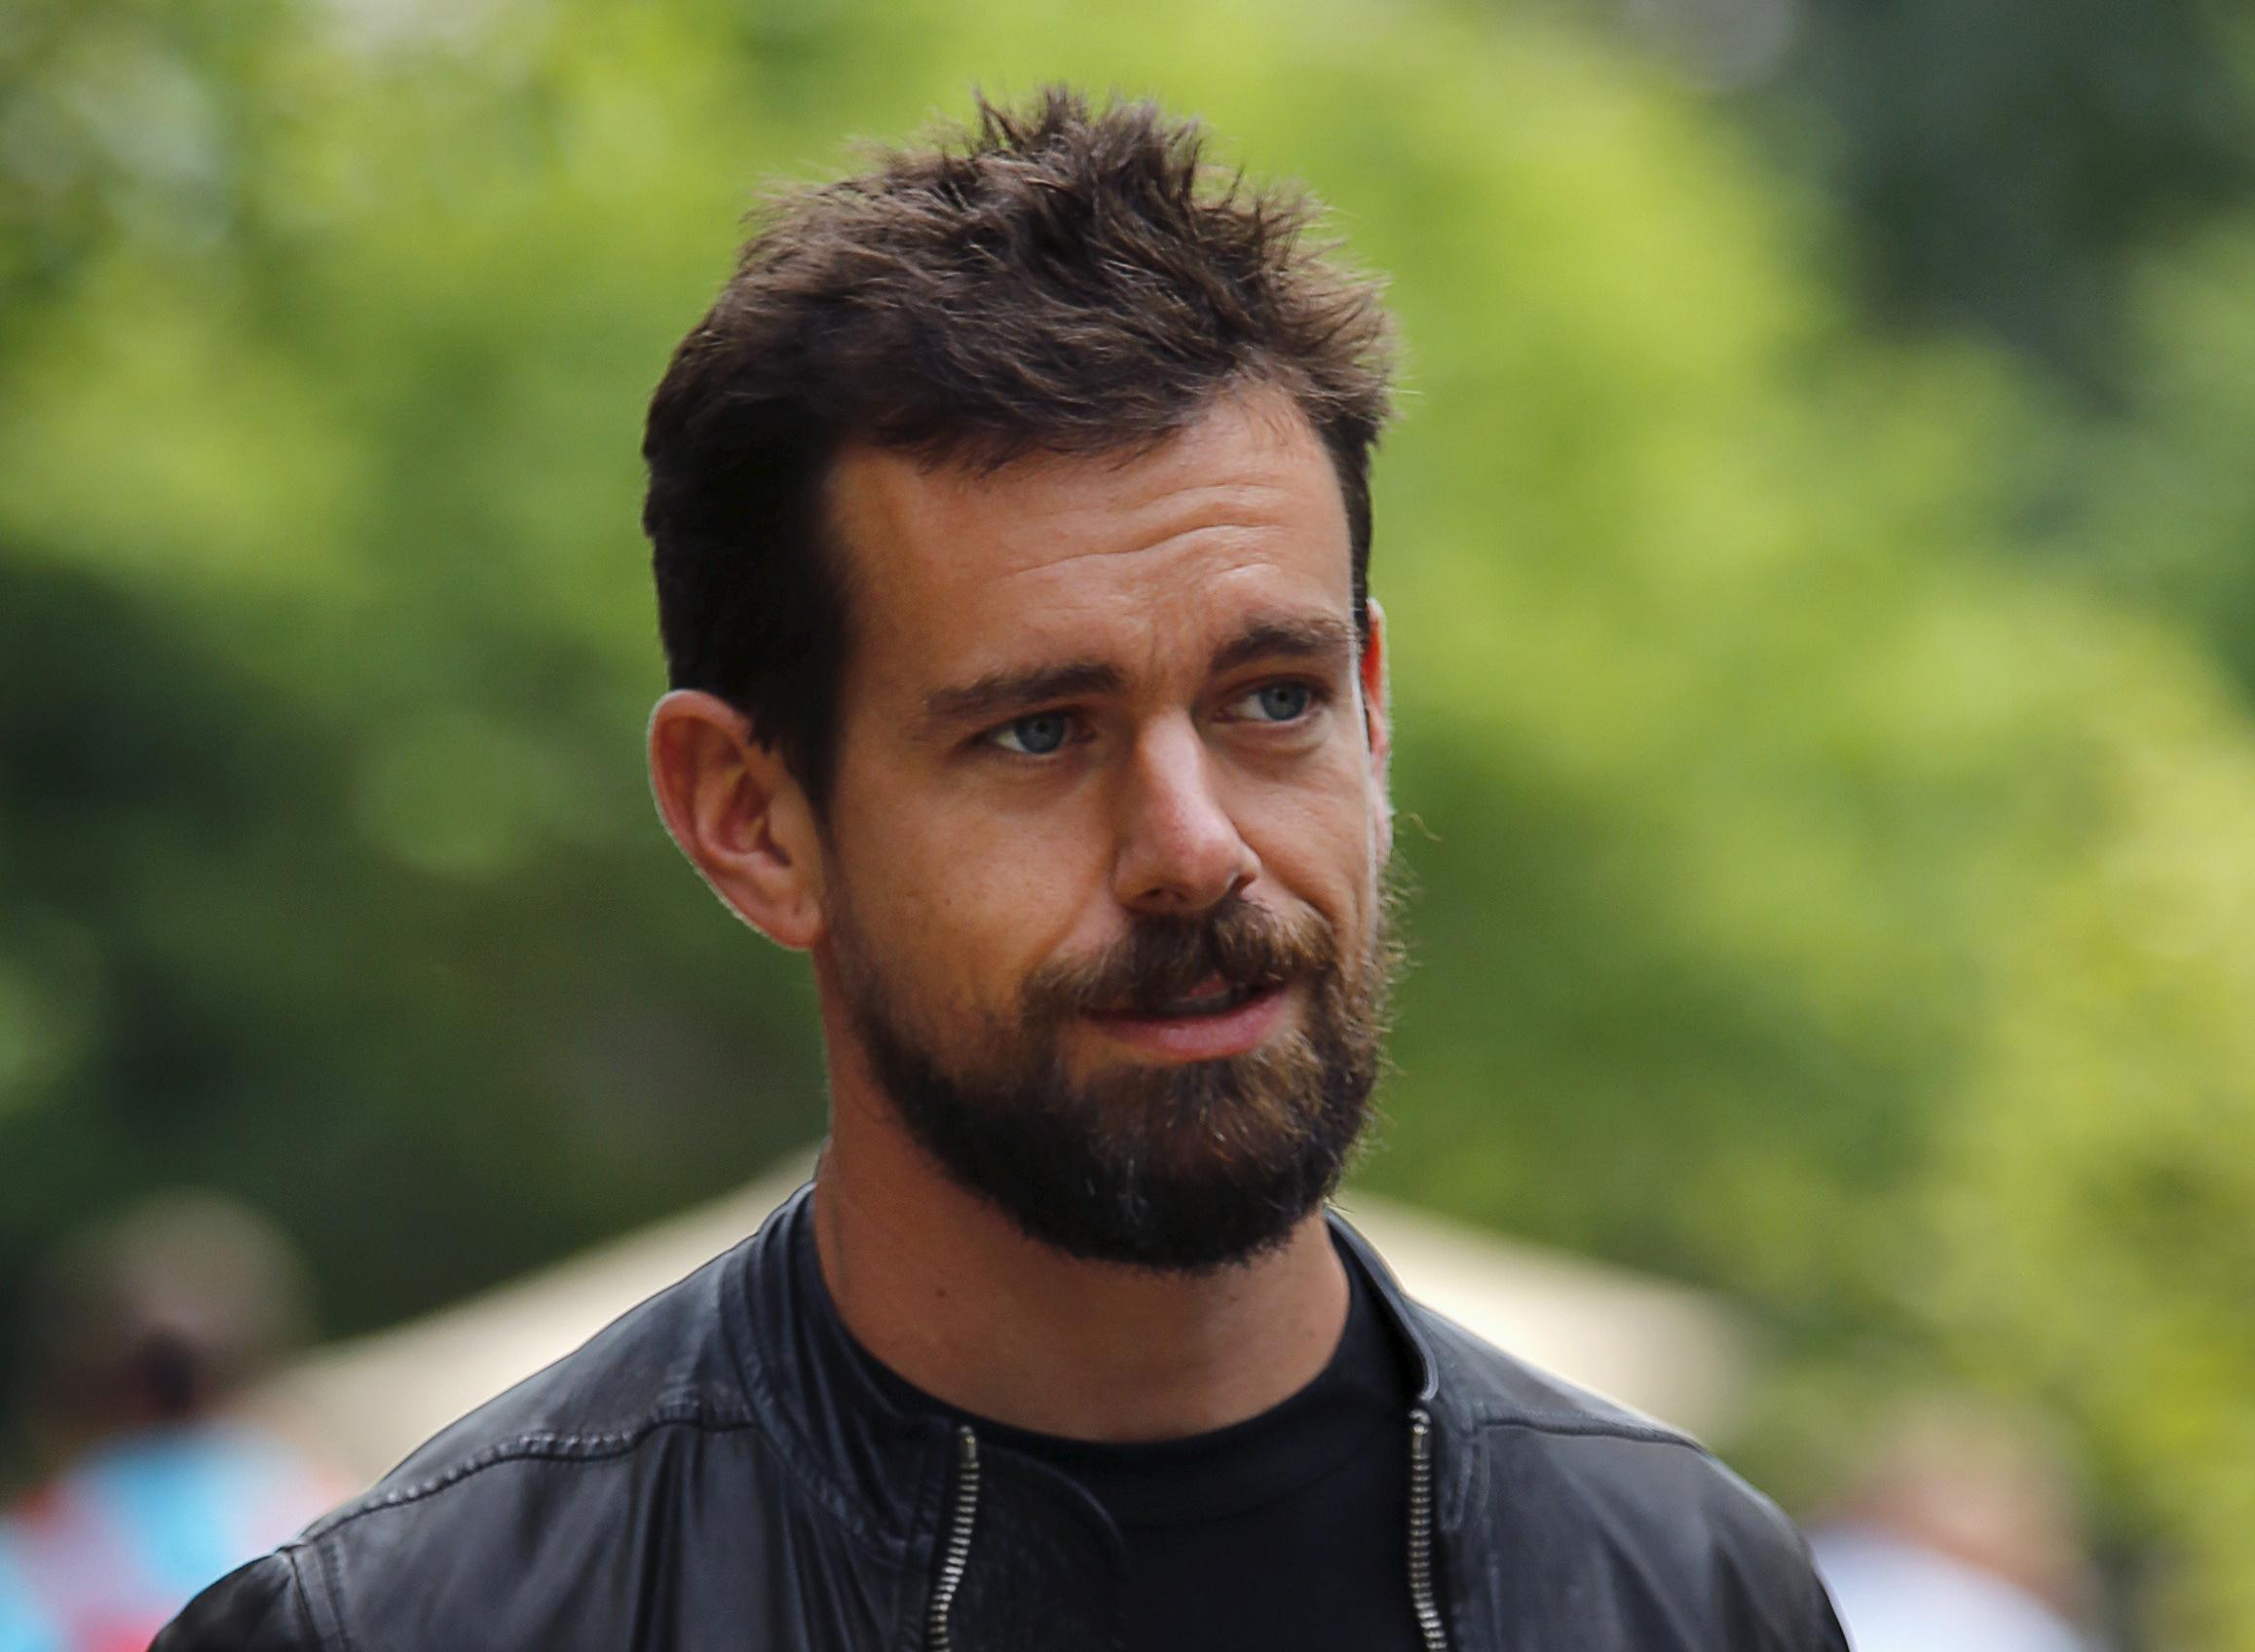 Jack Dorsey, CEO of Twitter, goes for a walk on the first day of the annual Allen and Co. media conference in Sun Valley, Idaho in this file photo from July 8, 2015.Photo: Reuters/ File